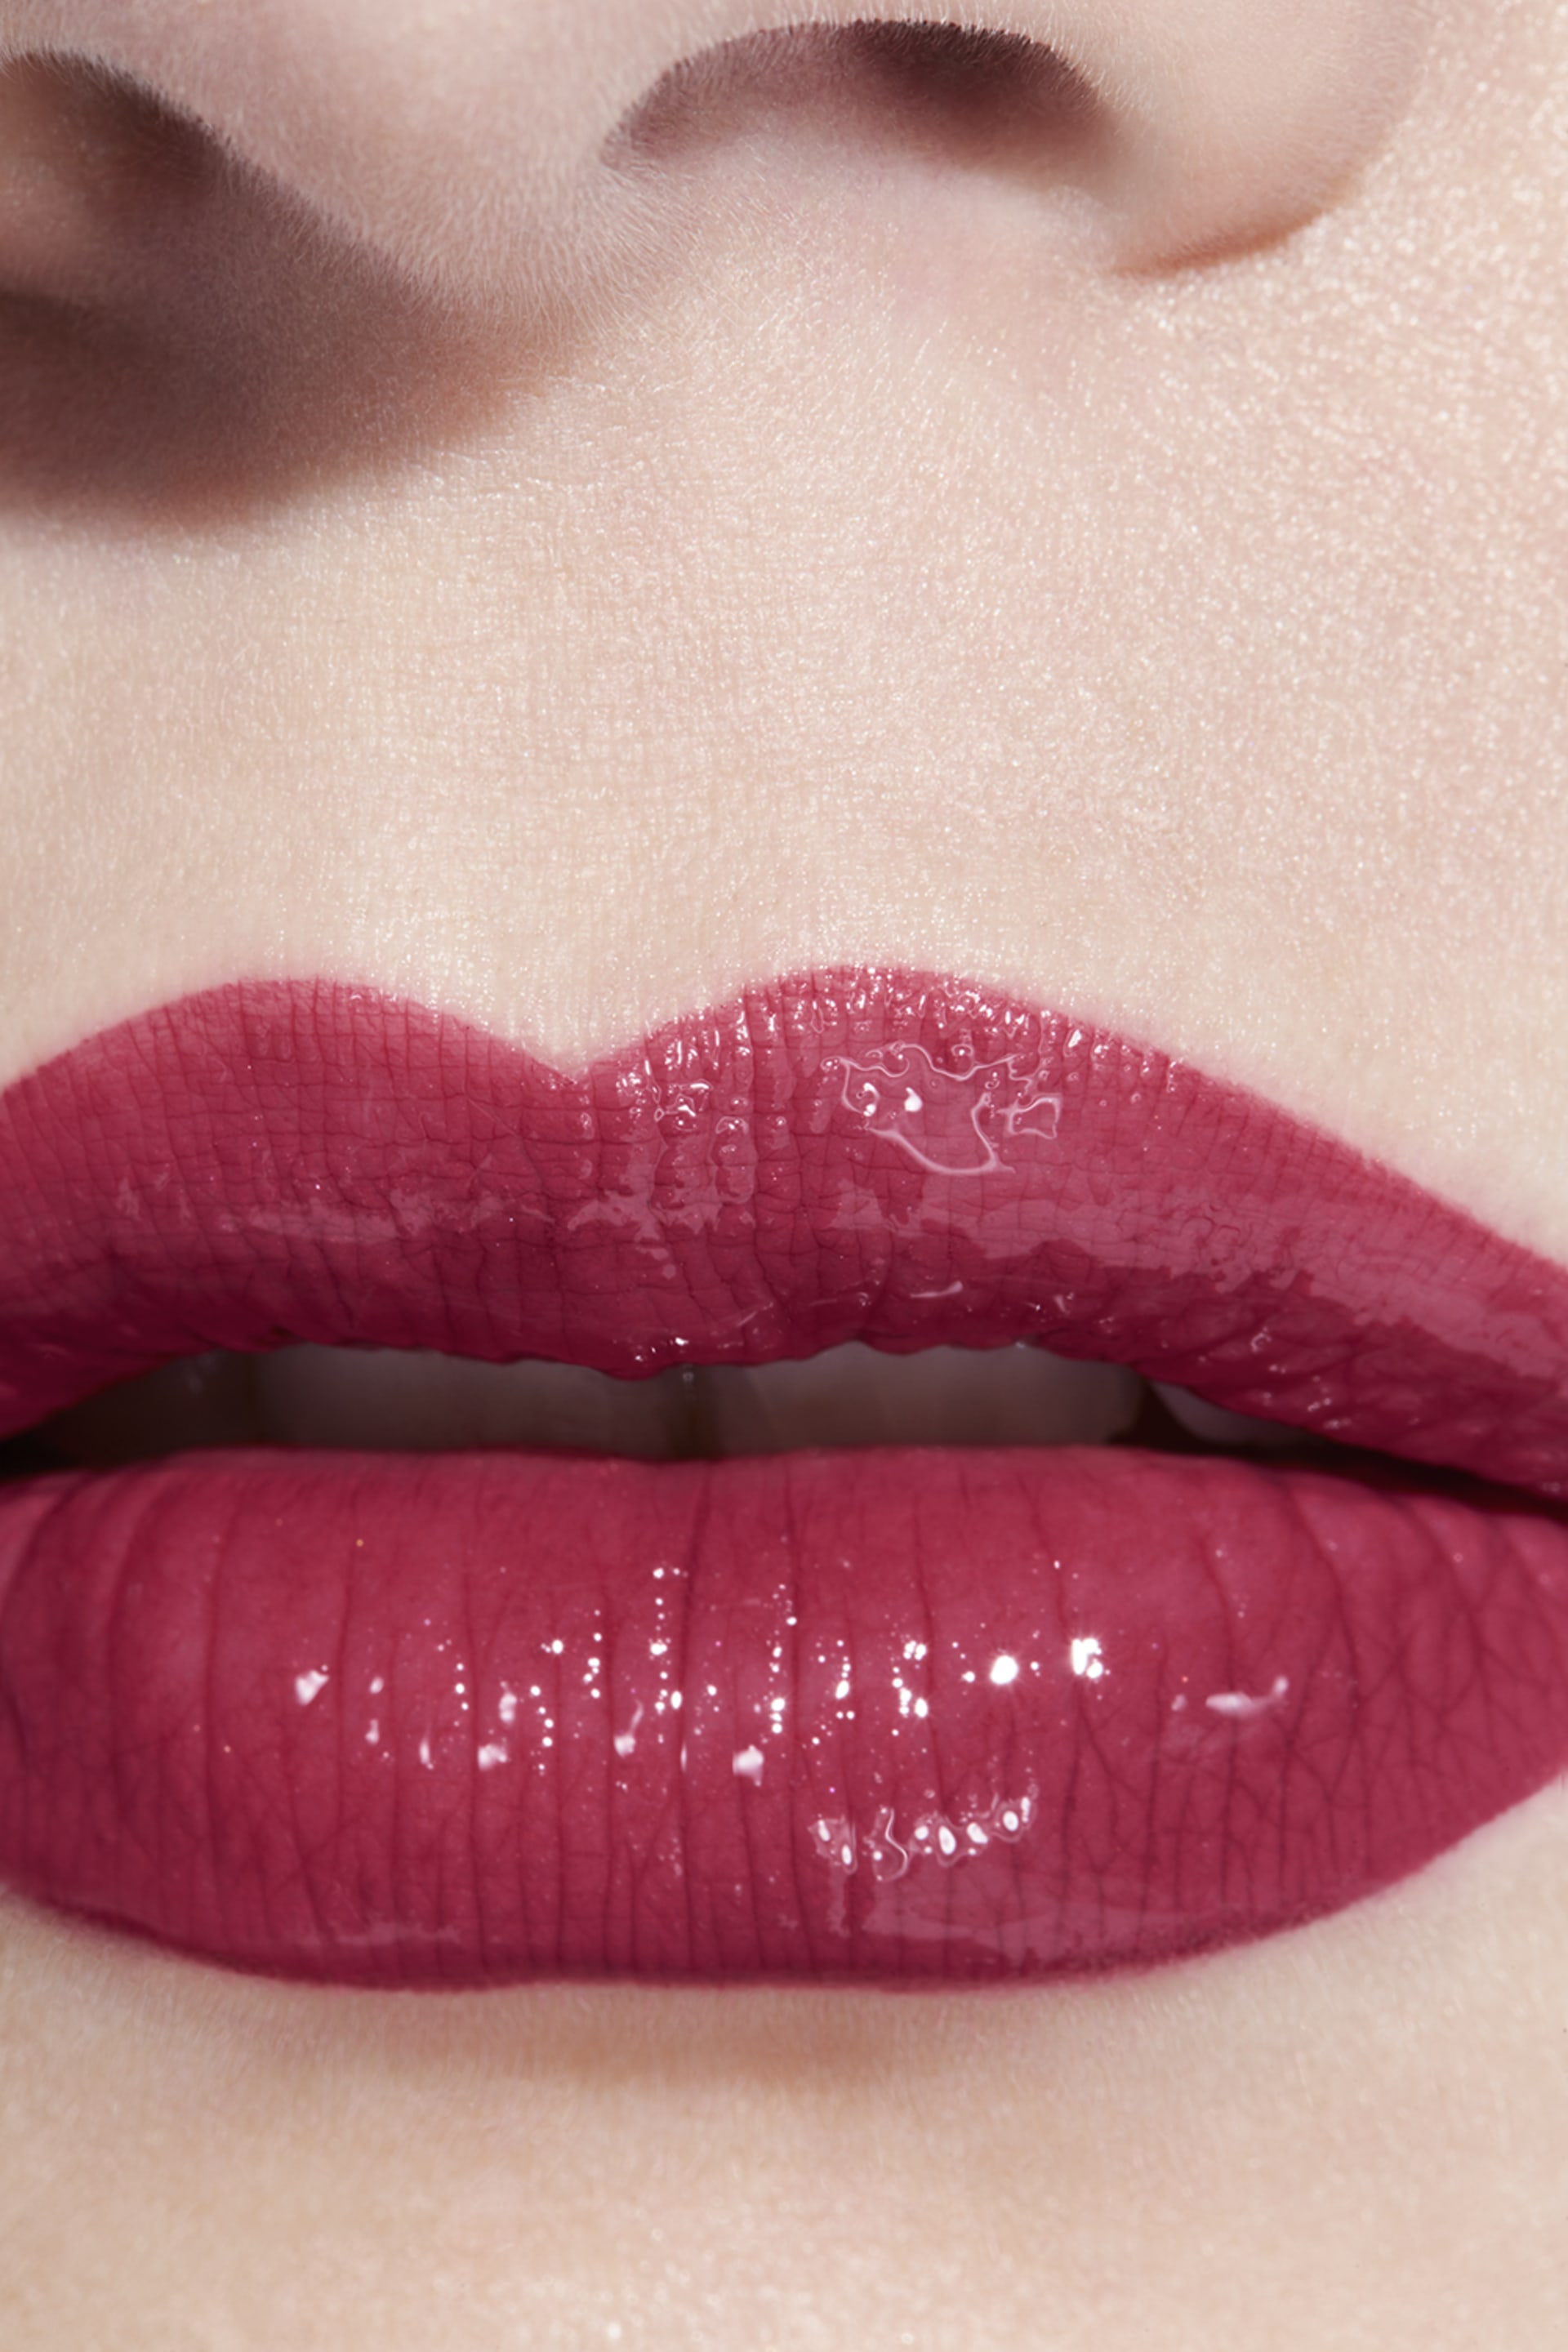 Application makeup visual 3 - LE ROUGE DUO ULTRA TENUE 43 - SENSUAL ROSE